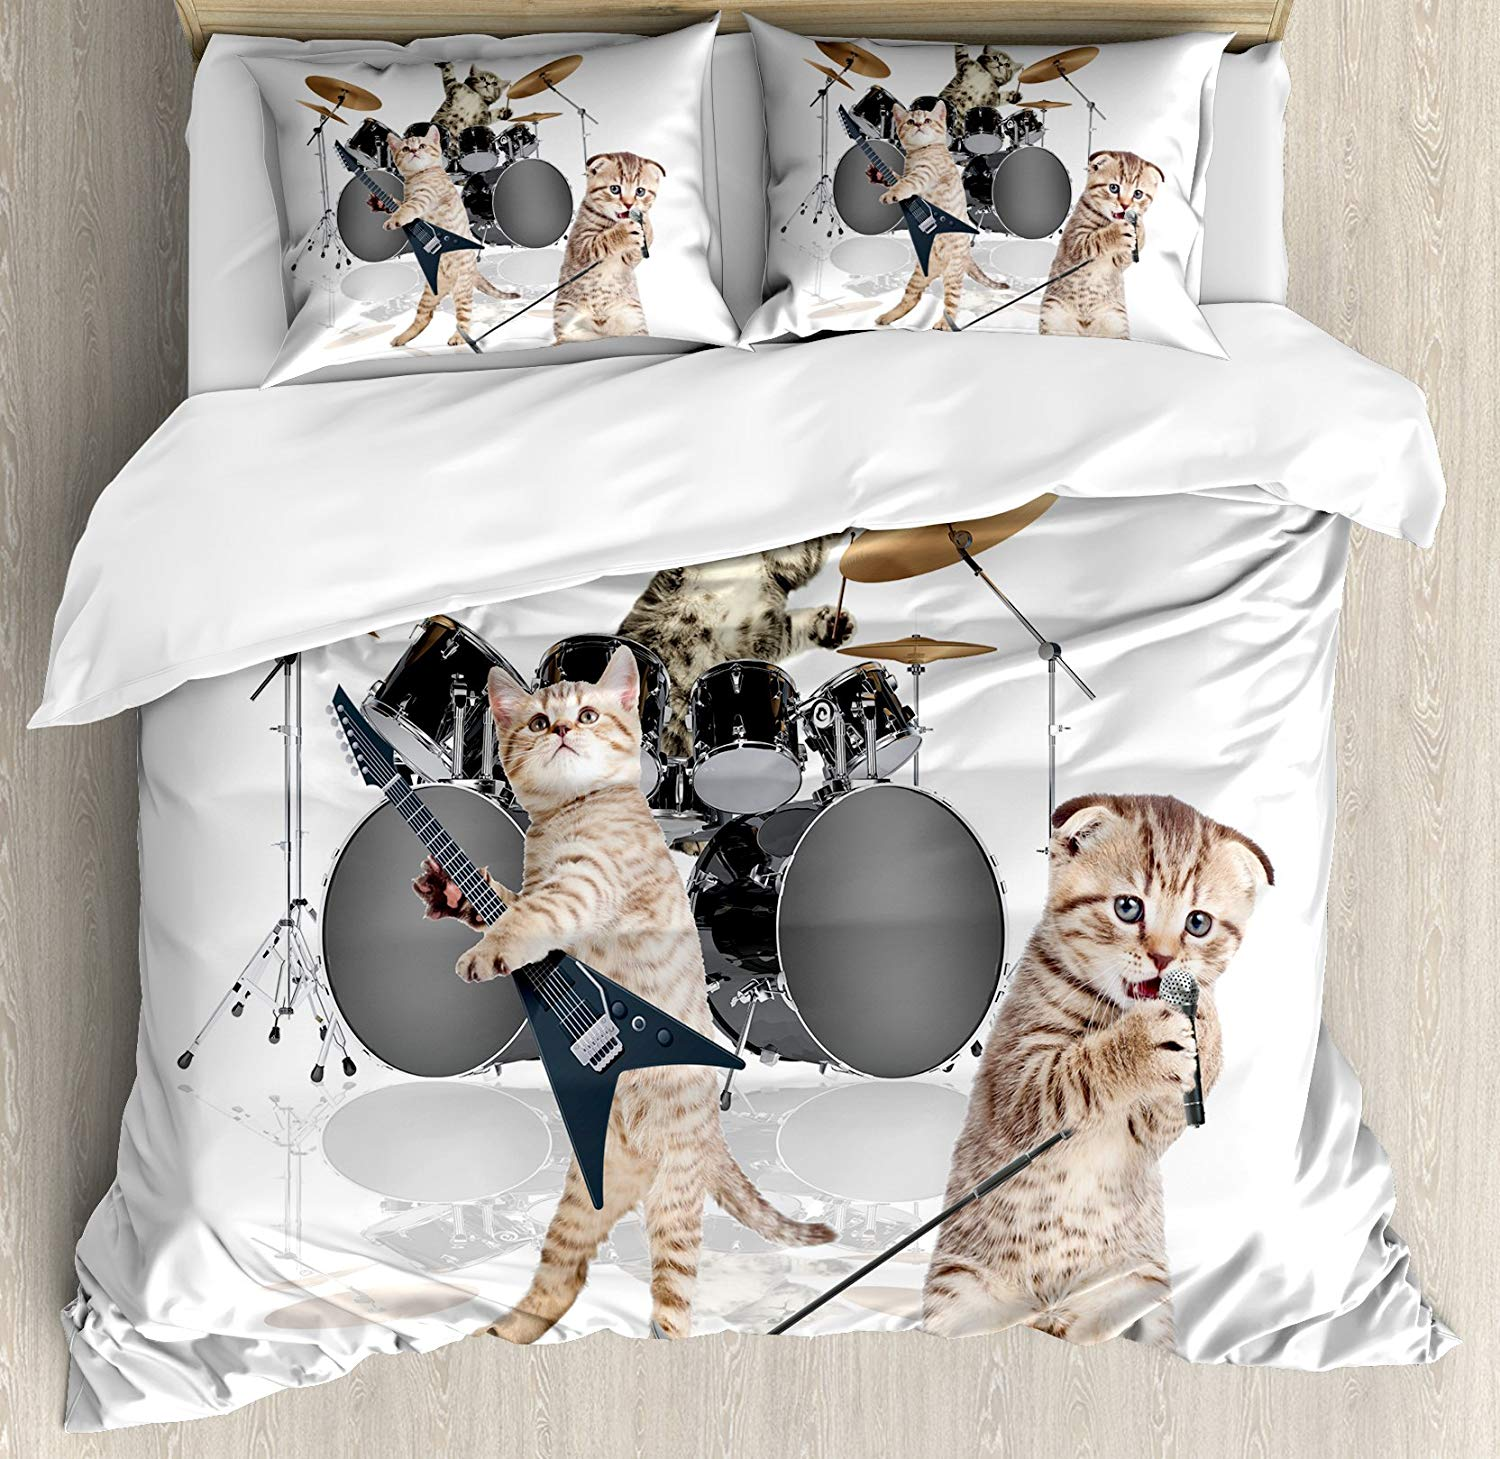 Animal Decor Duvet Cover Set Cool Fancy Hard Cute Rocker Band Kittens Singer Guitarist Cats Print 3/4pcs Bedding SetAnimal Decor Duvet Cover Set Cool Fancy Hard Cute Rocker Band Kittens Singer Guitarist Cats Print 3/4pcs Bedding Set